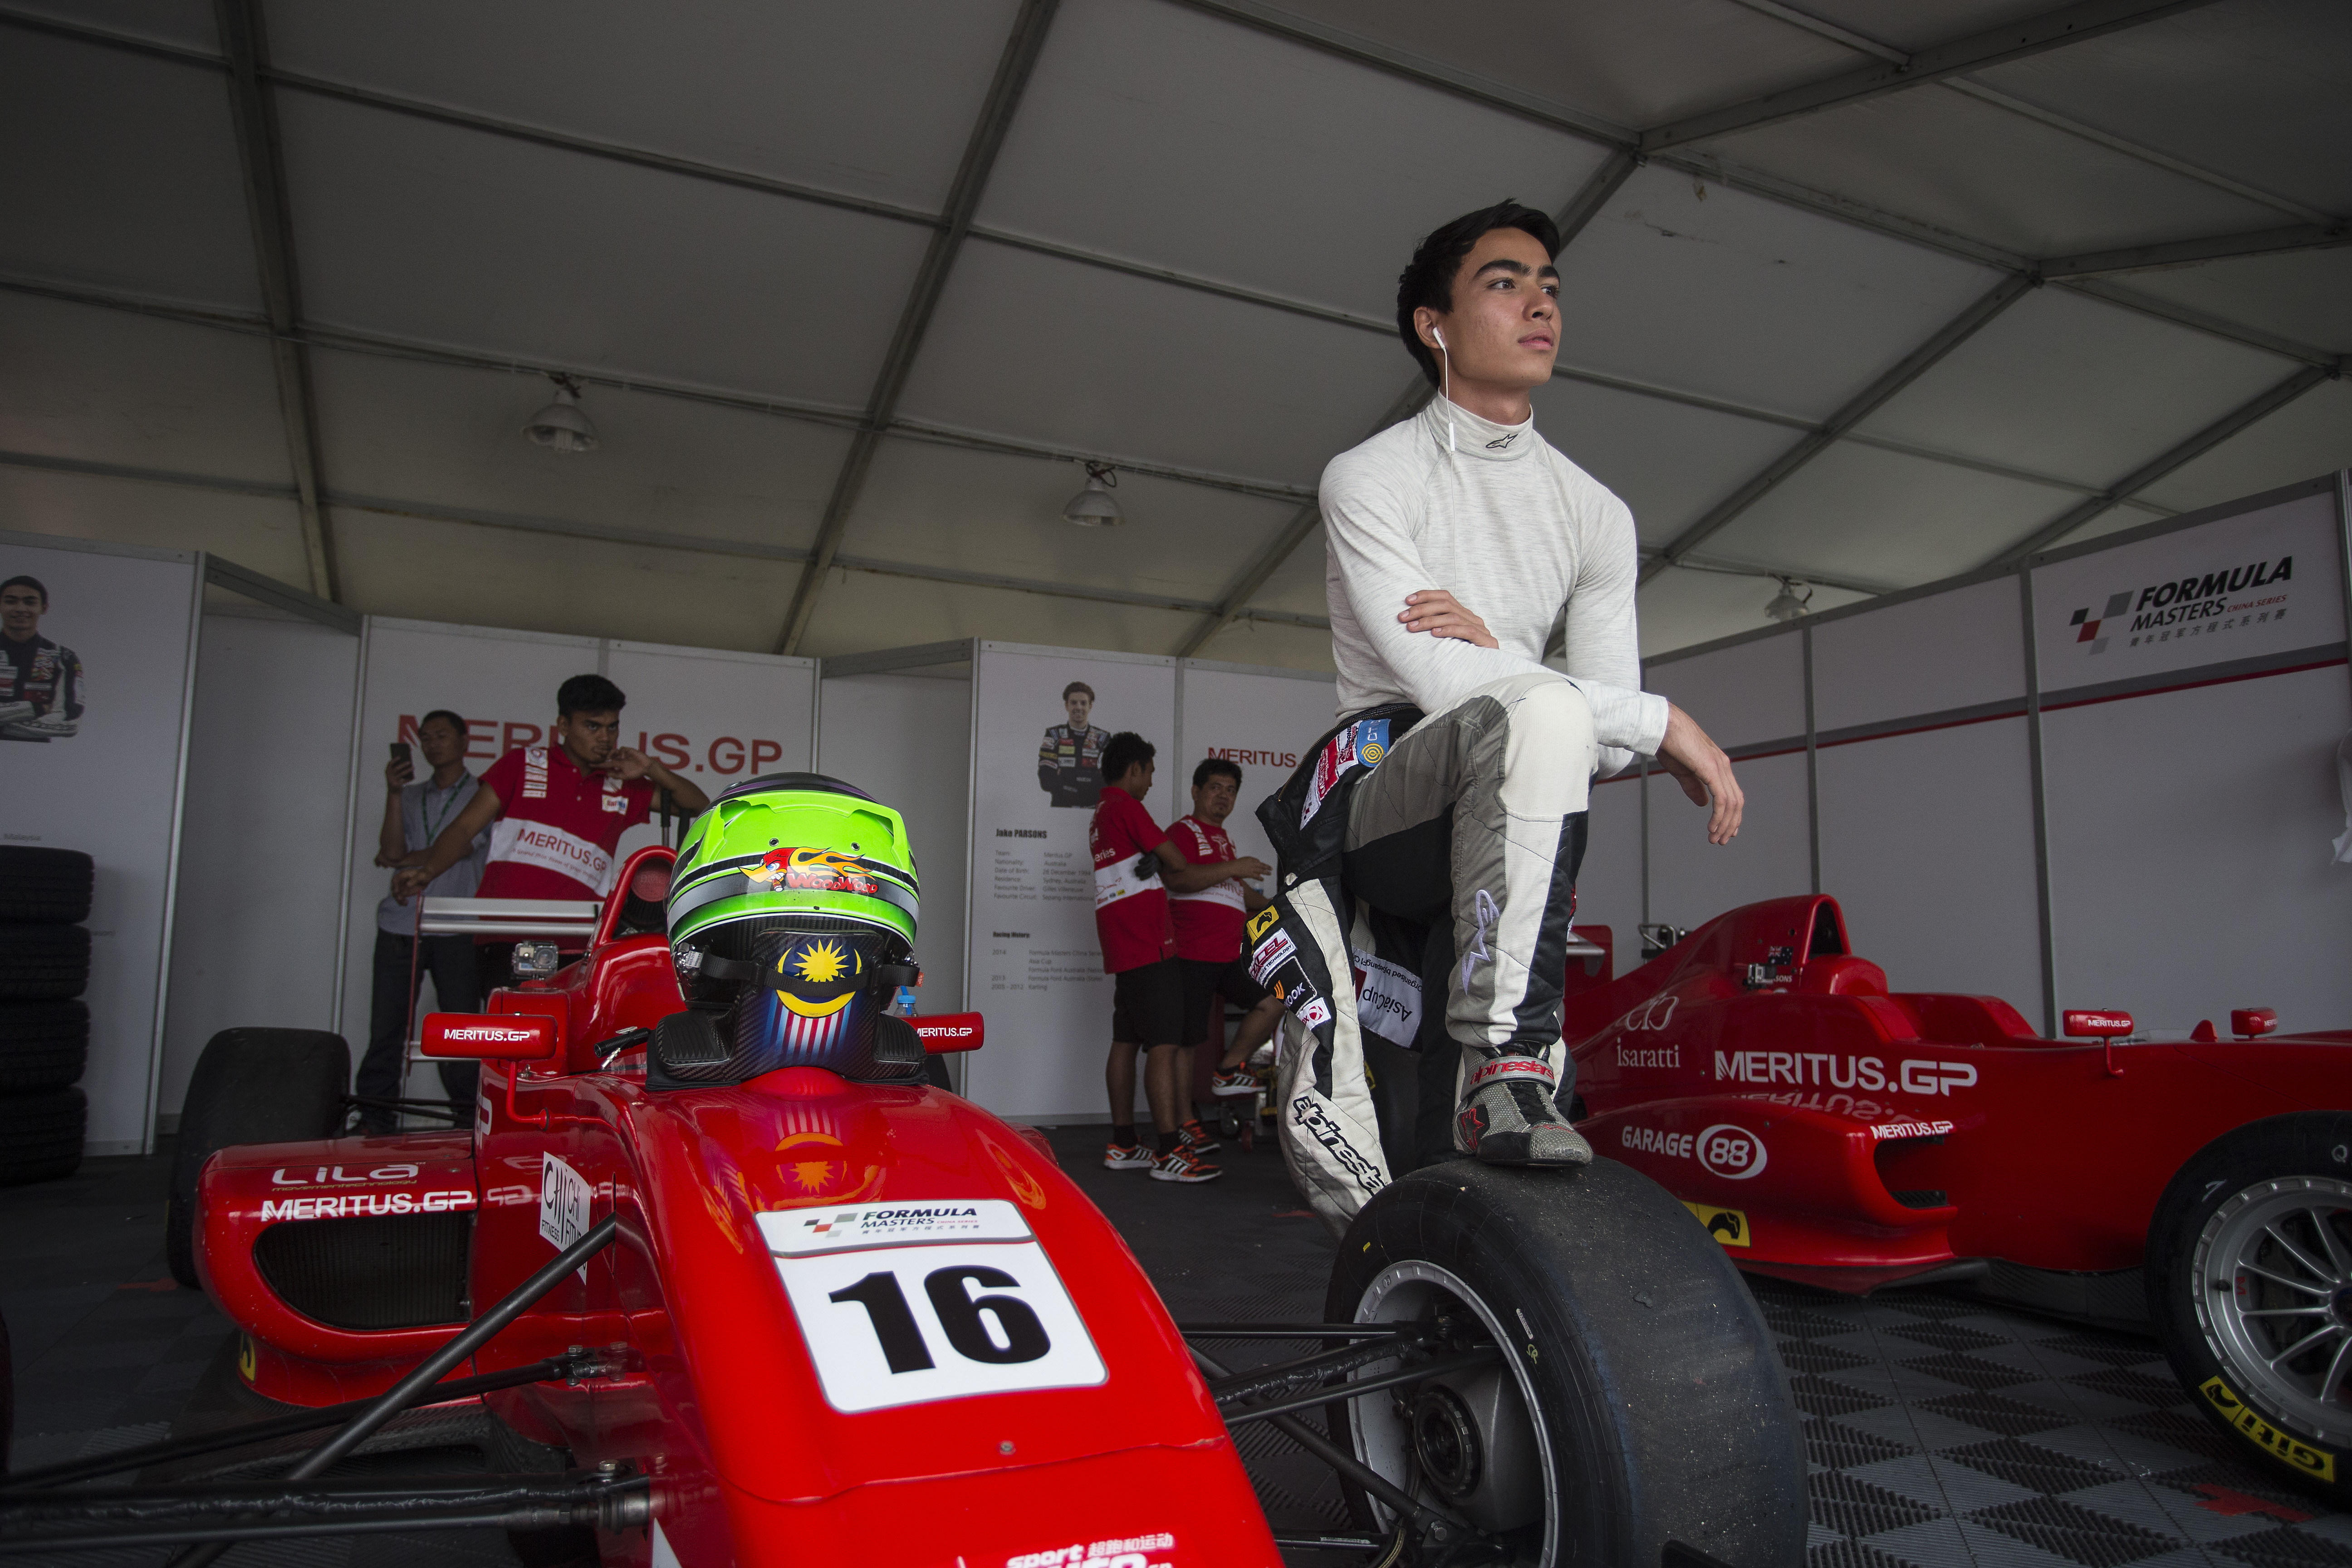 Formula Masters China Series Shanghai International Circuit, Shanghai, China. Saturday 6th June 2015. Photo: Andrew Ferraro/FMCS www.andrewferraro.com